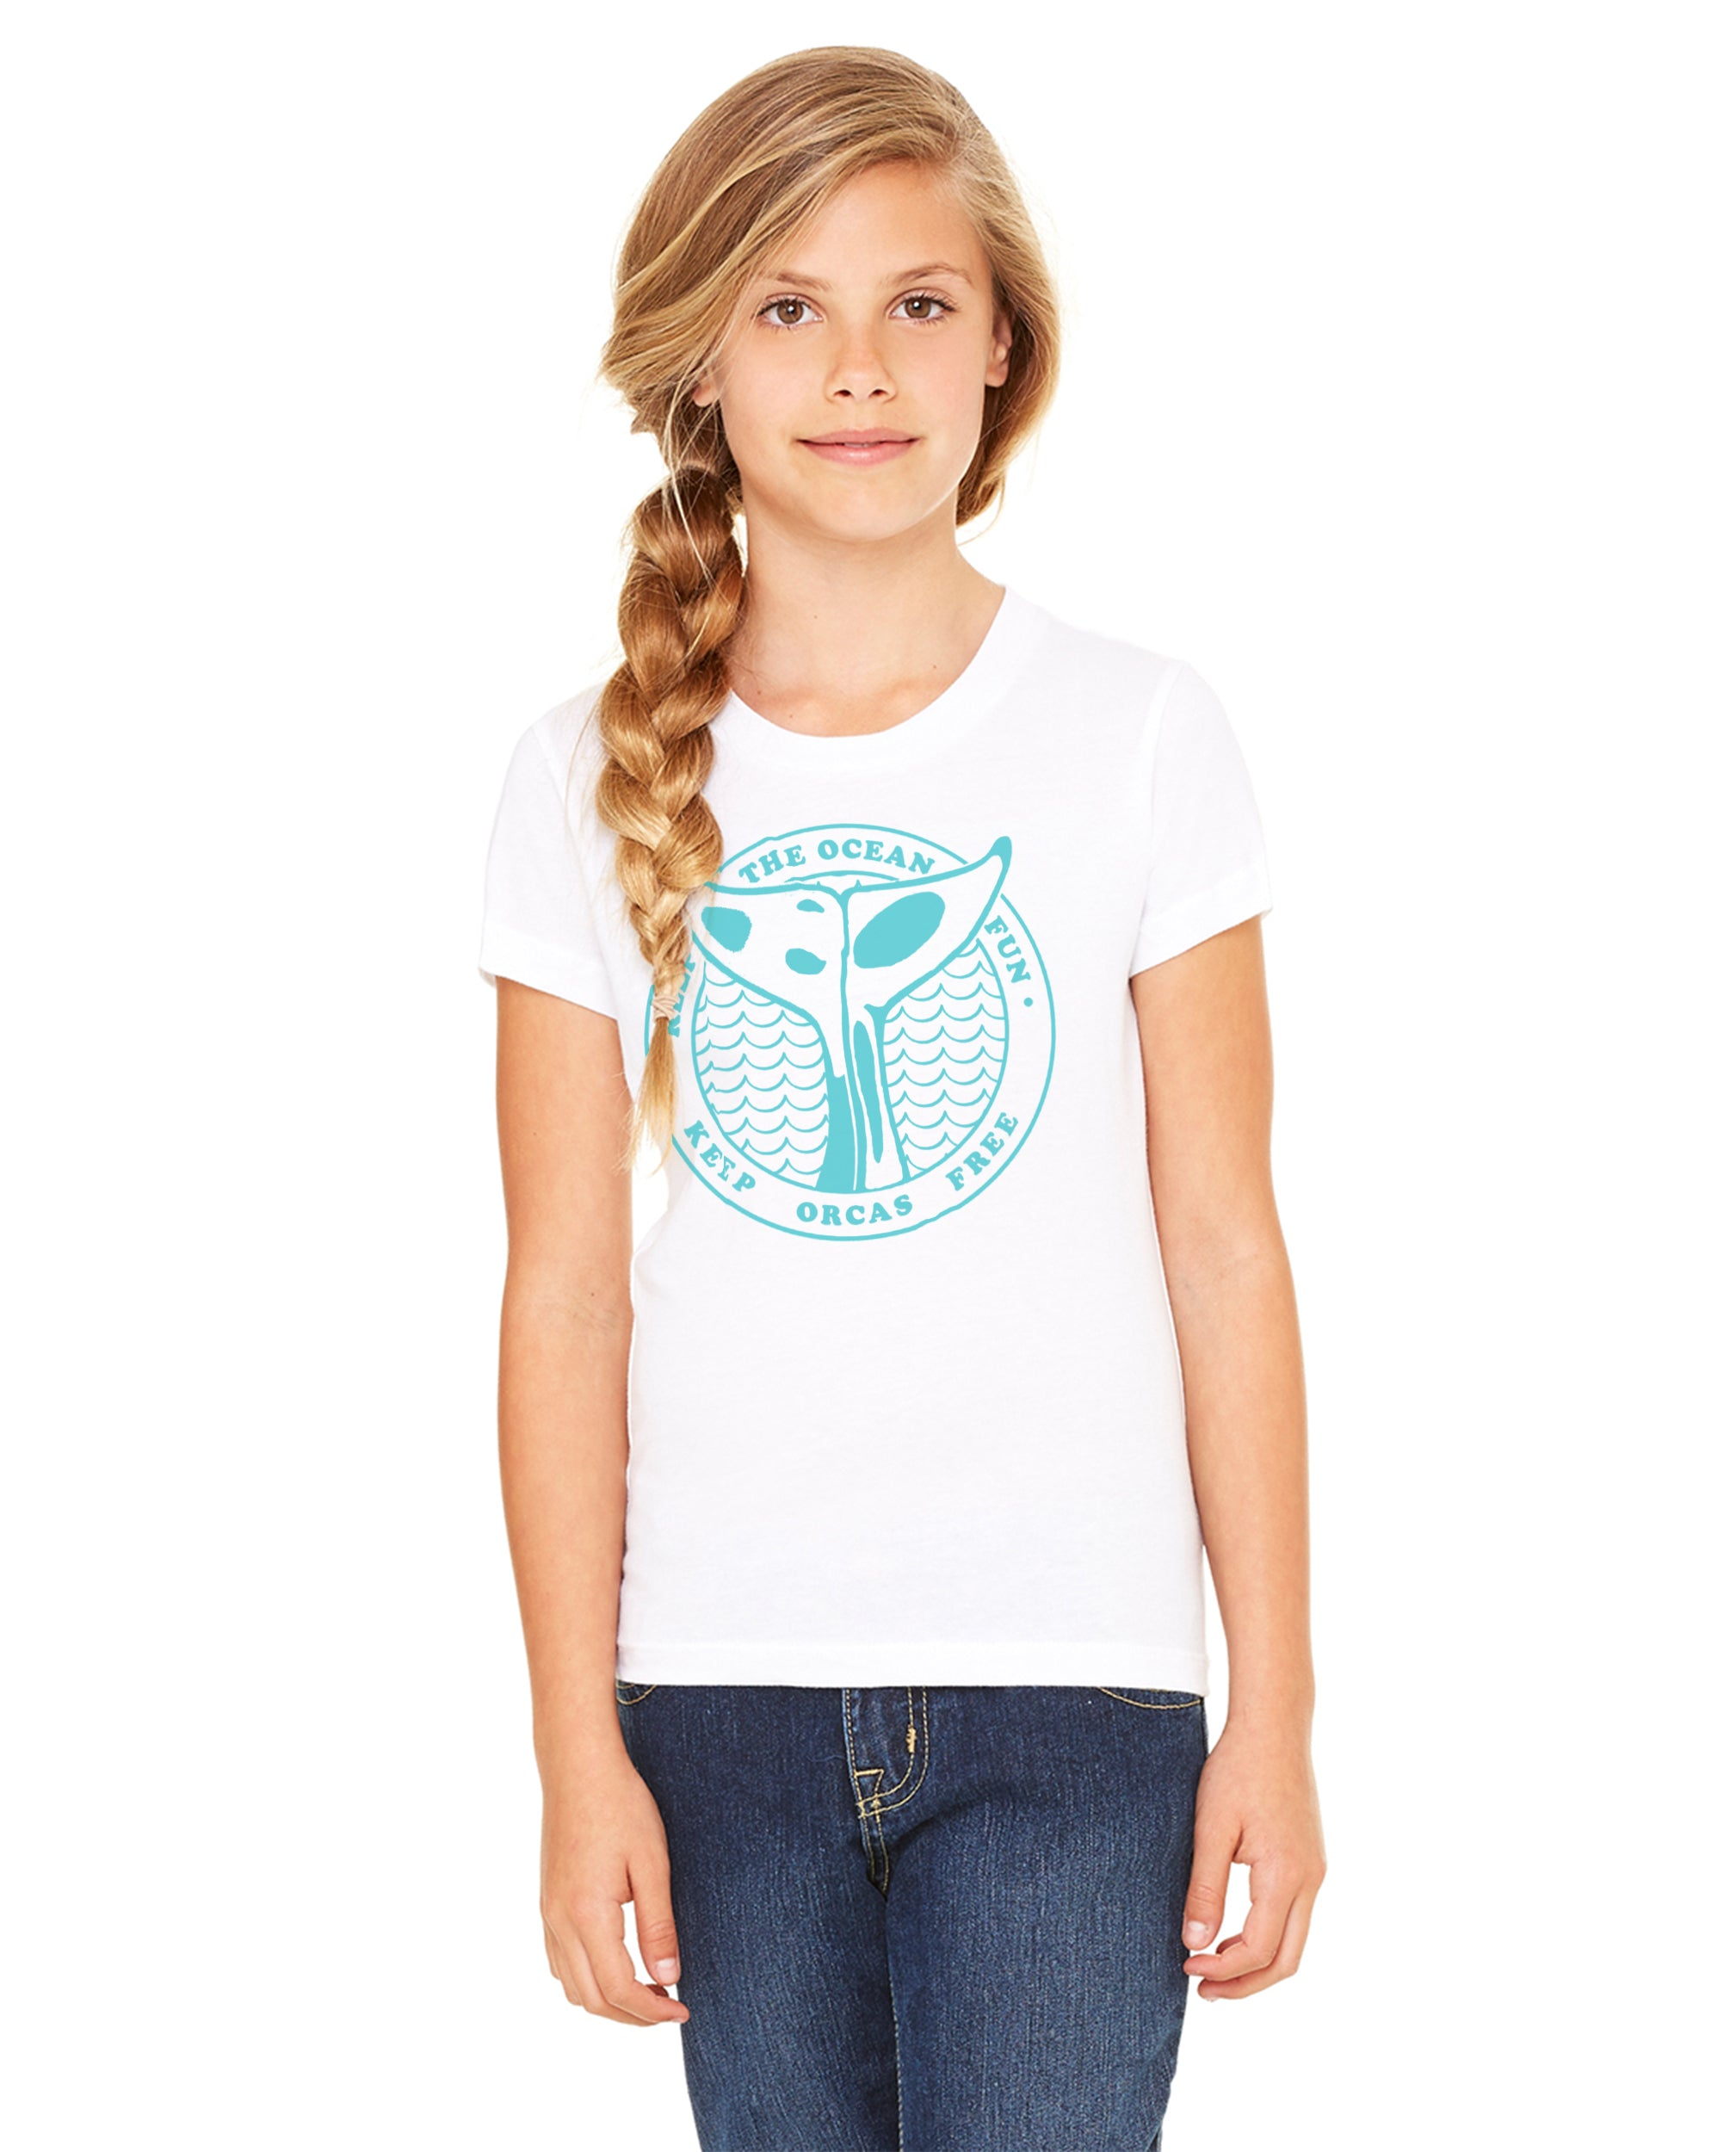 Keep Orcas Free Girls Premium Short Sleeve Crew